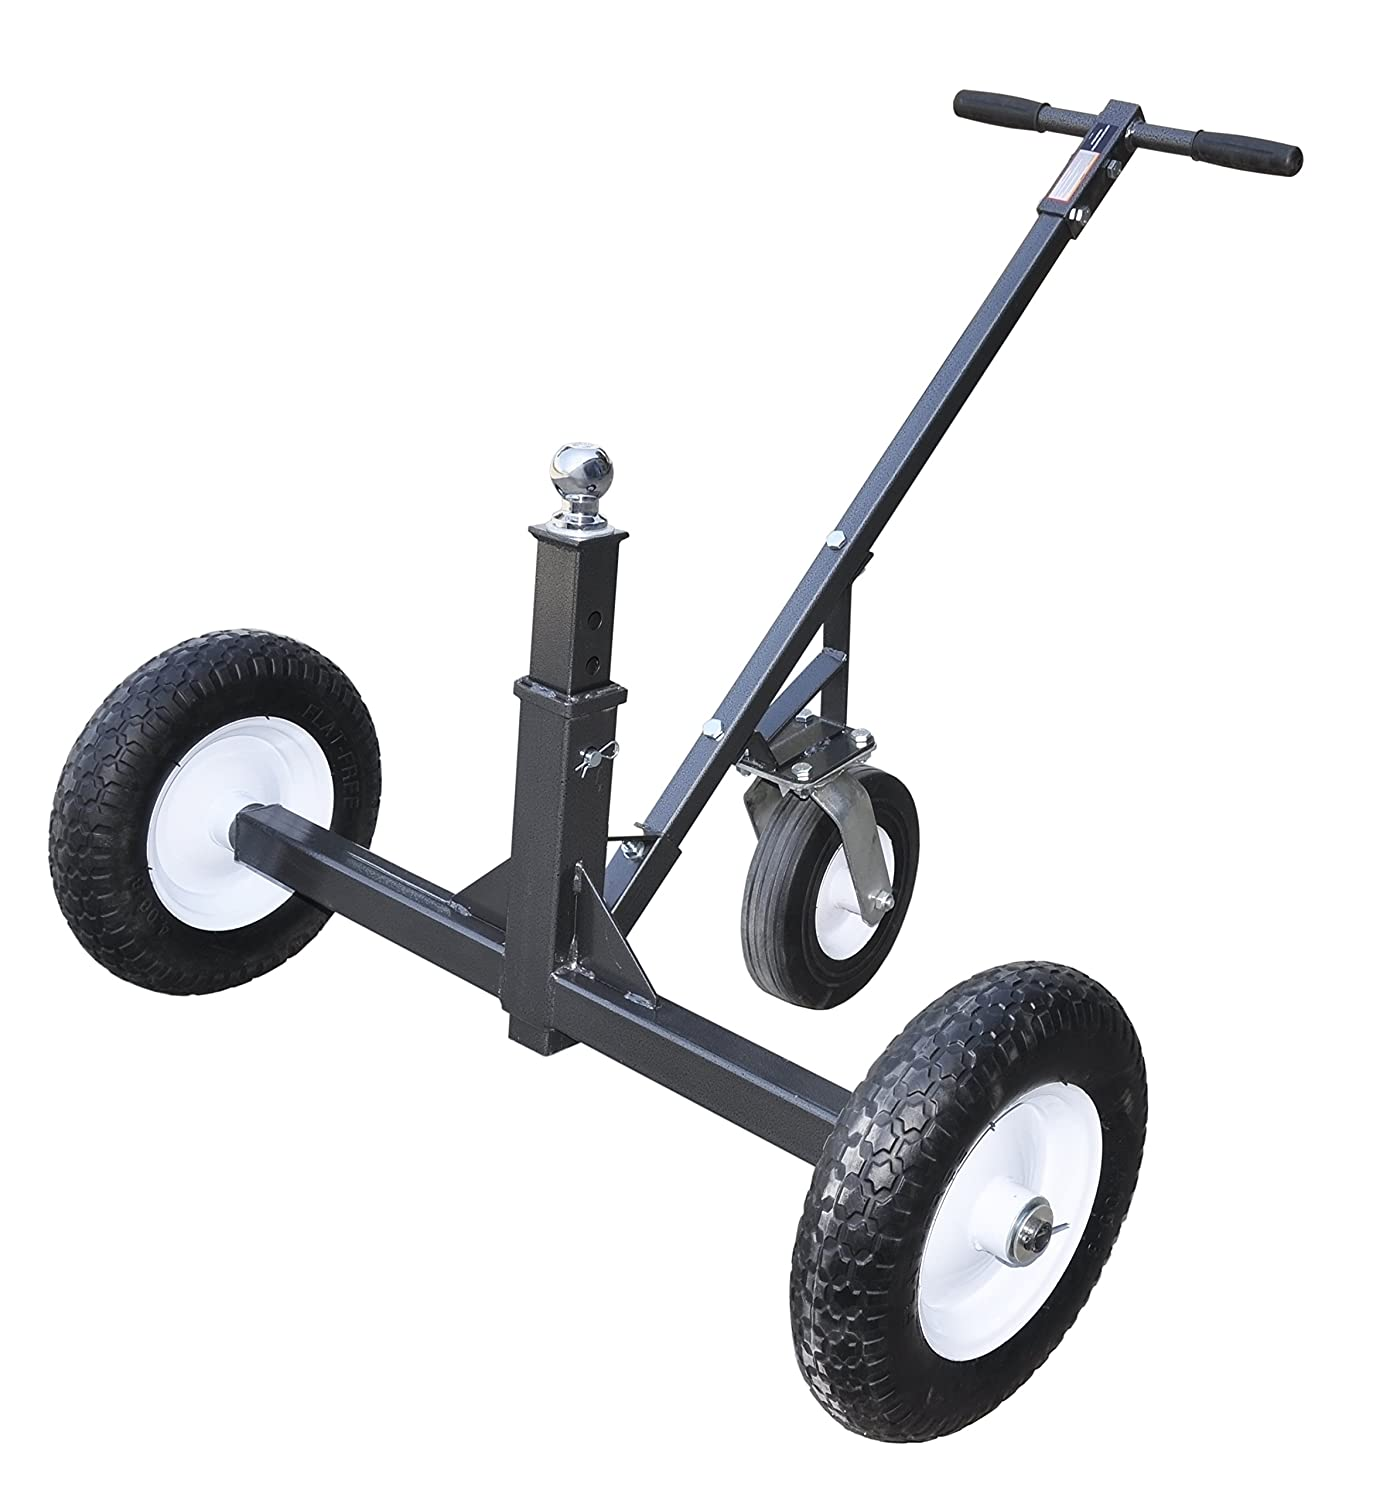 tow dolly review